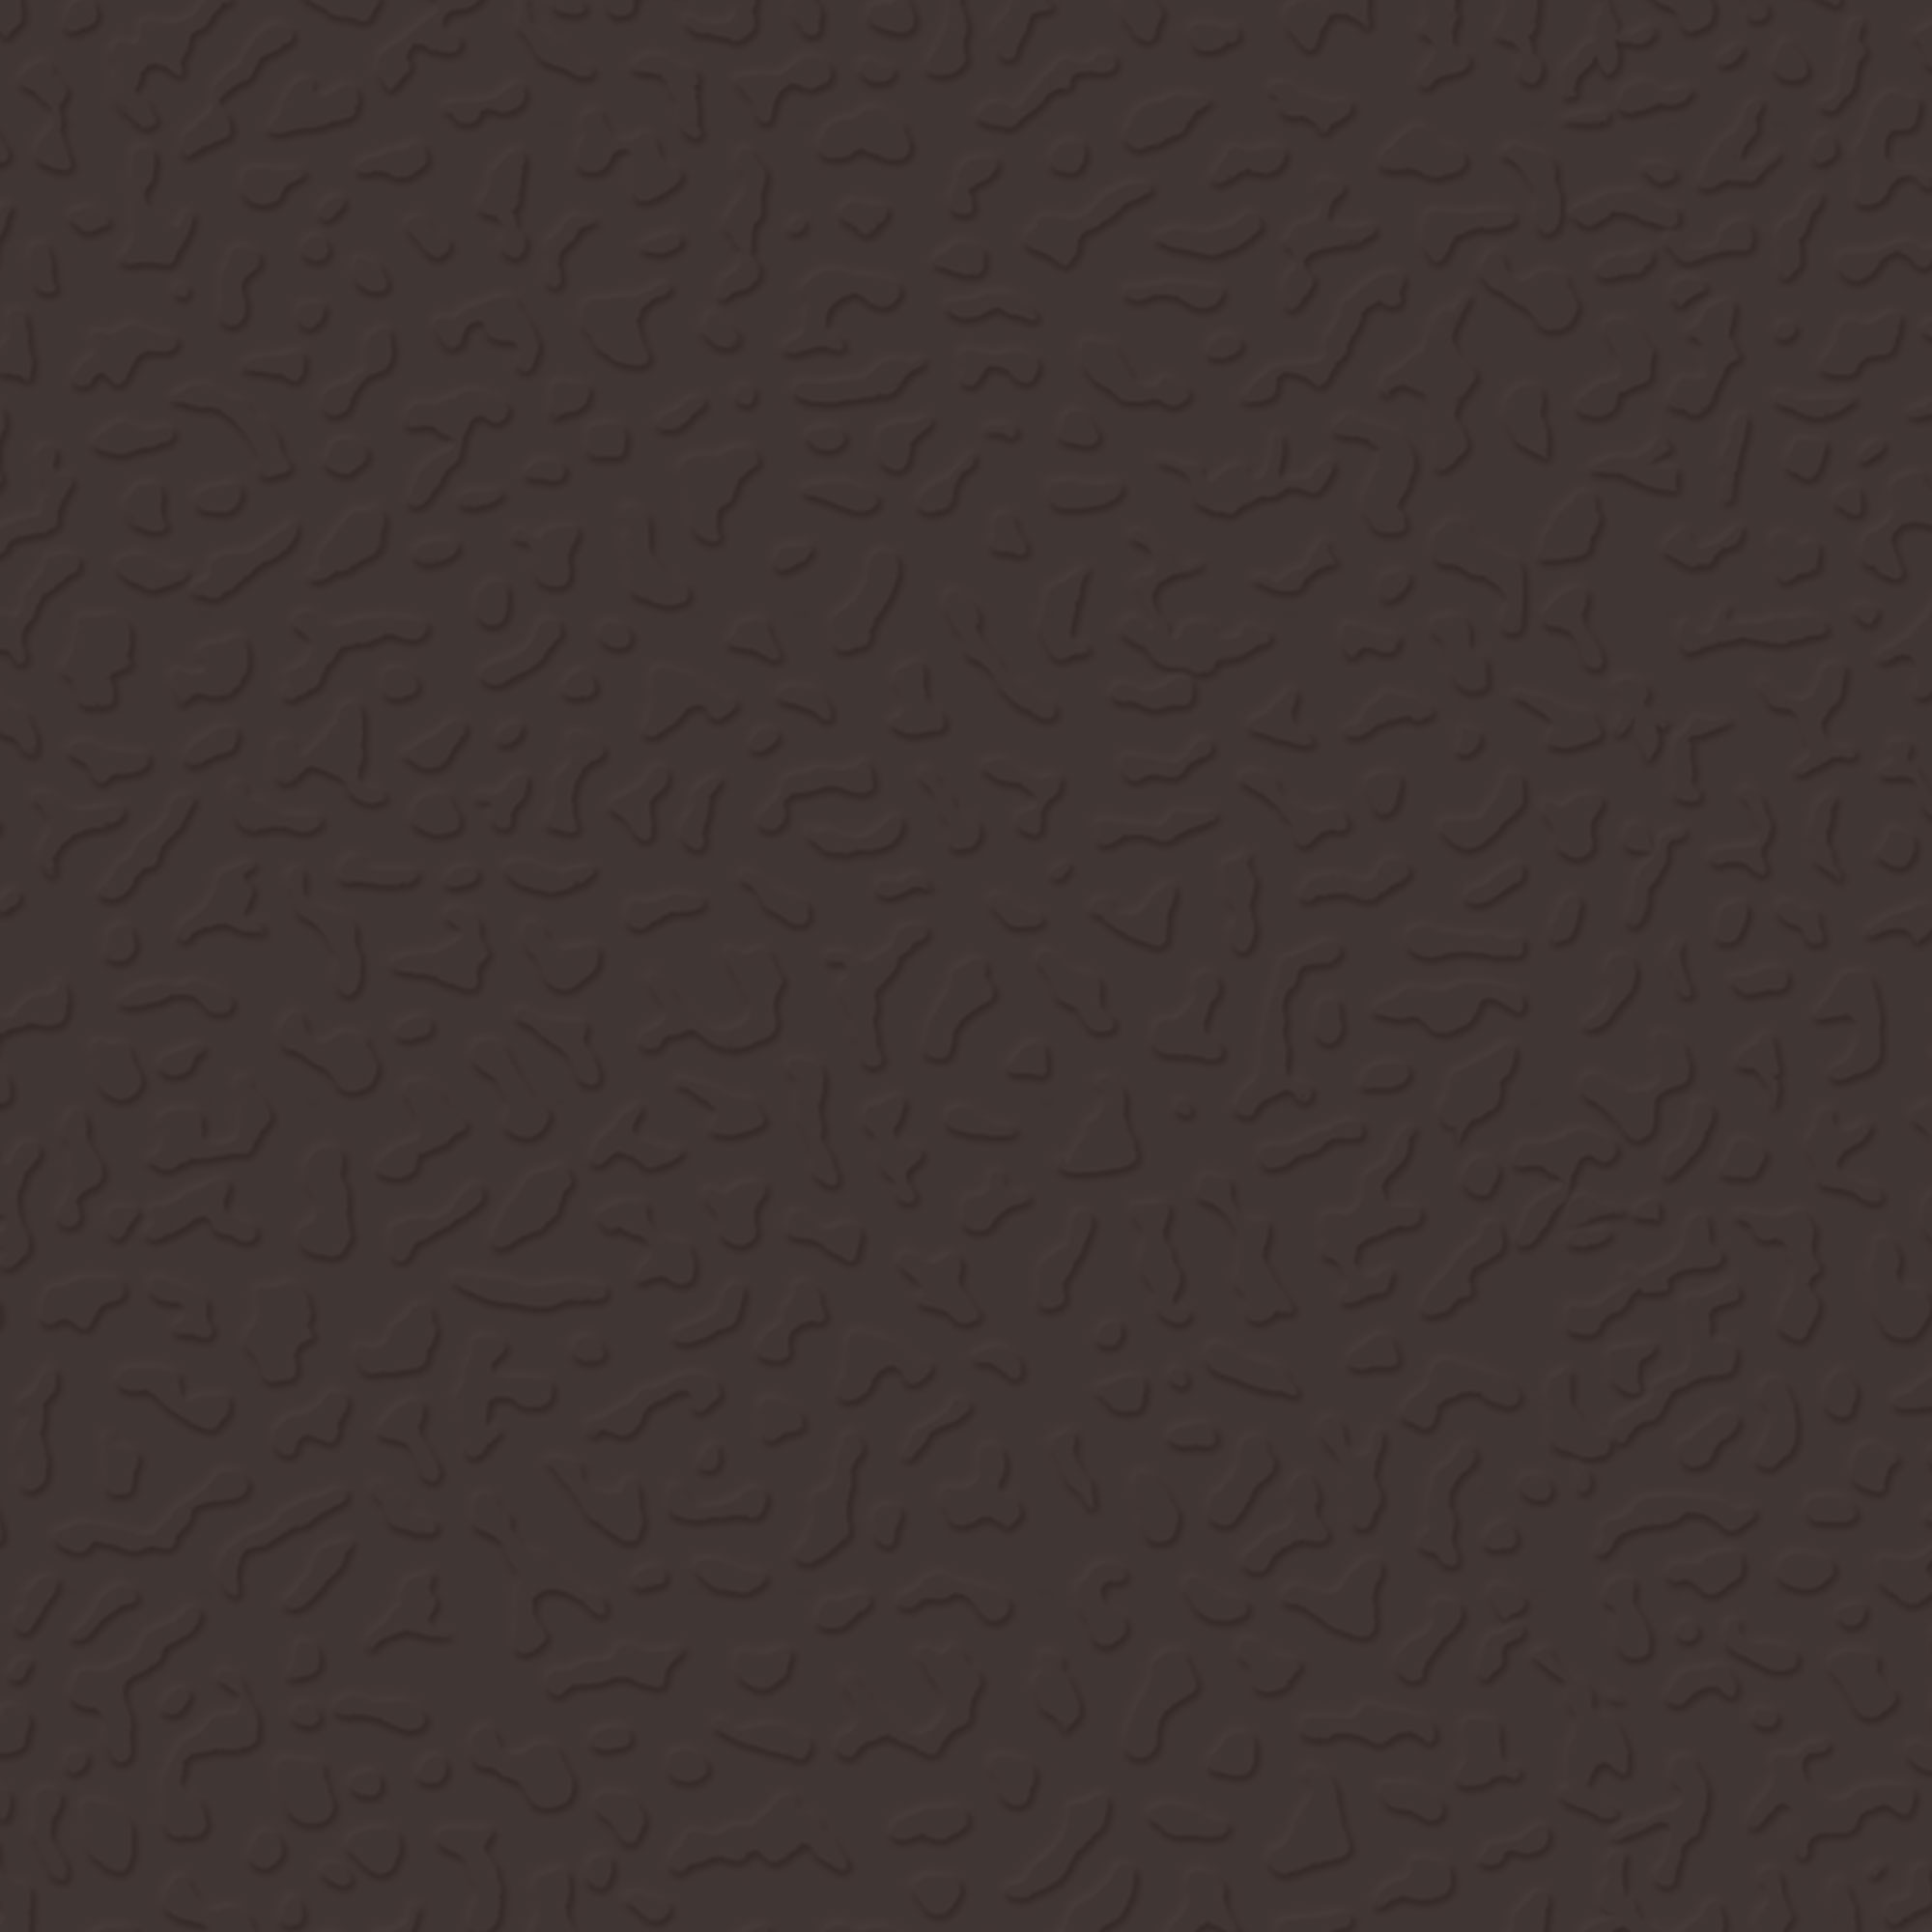 Roppe Rubber Tile 900 - Textured Design (993) Brown LB996110